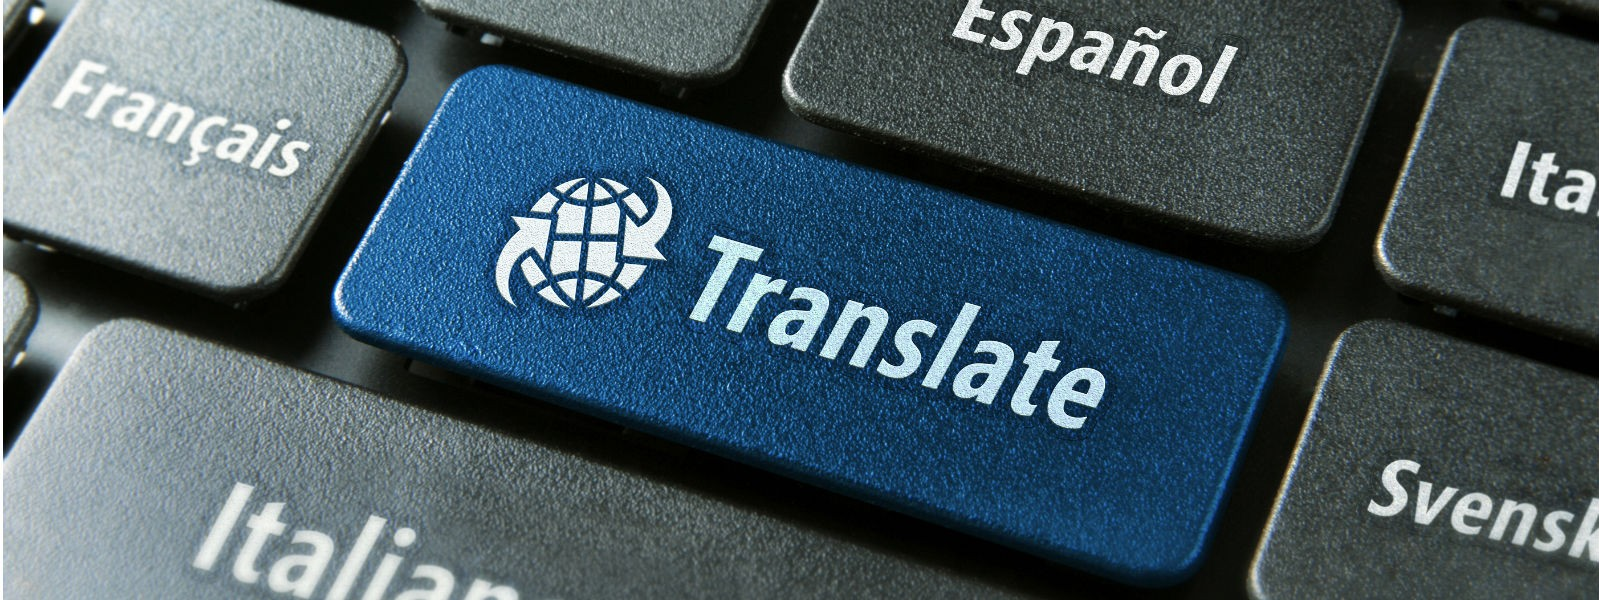 ...translation services into and from the major European and Oriental languages like English, French, Farsi, Arabic, Spanish, Japanese and Chinese, Hindi and Urdu.